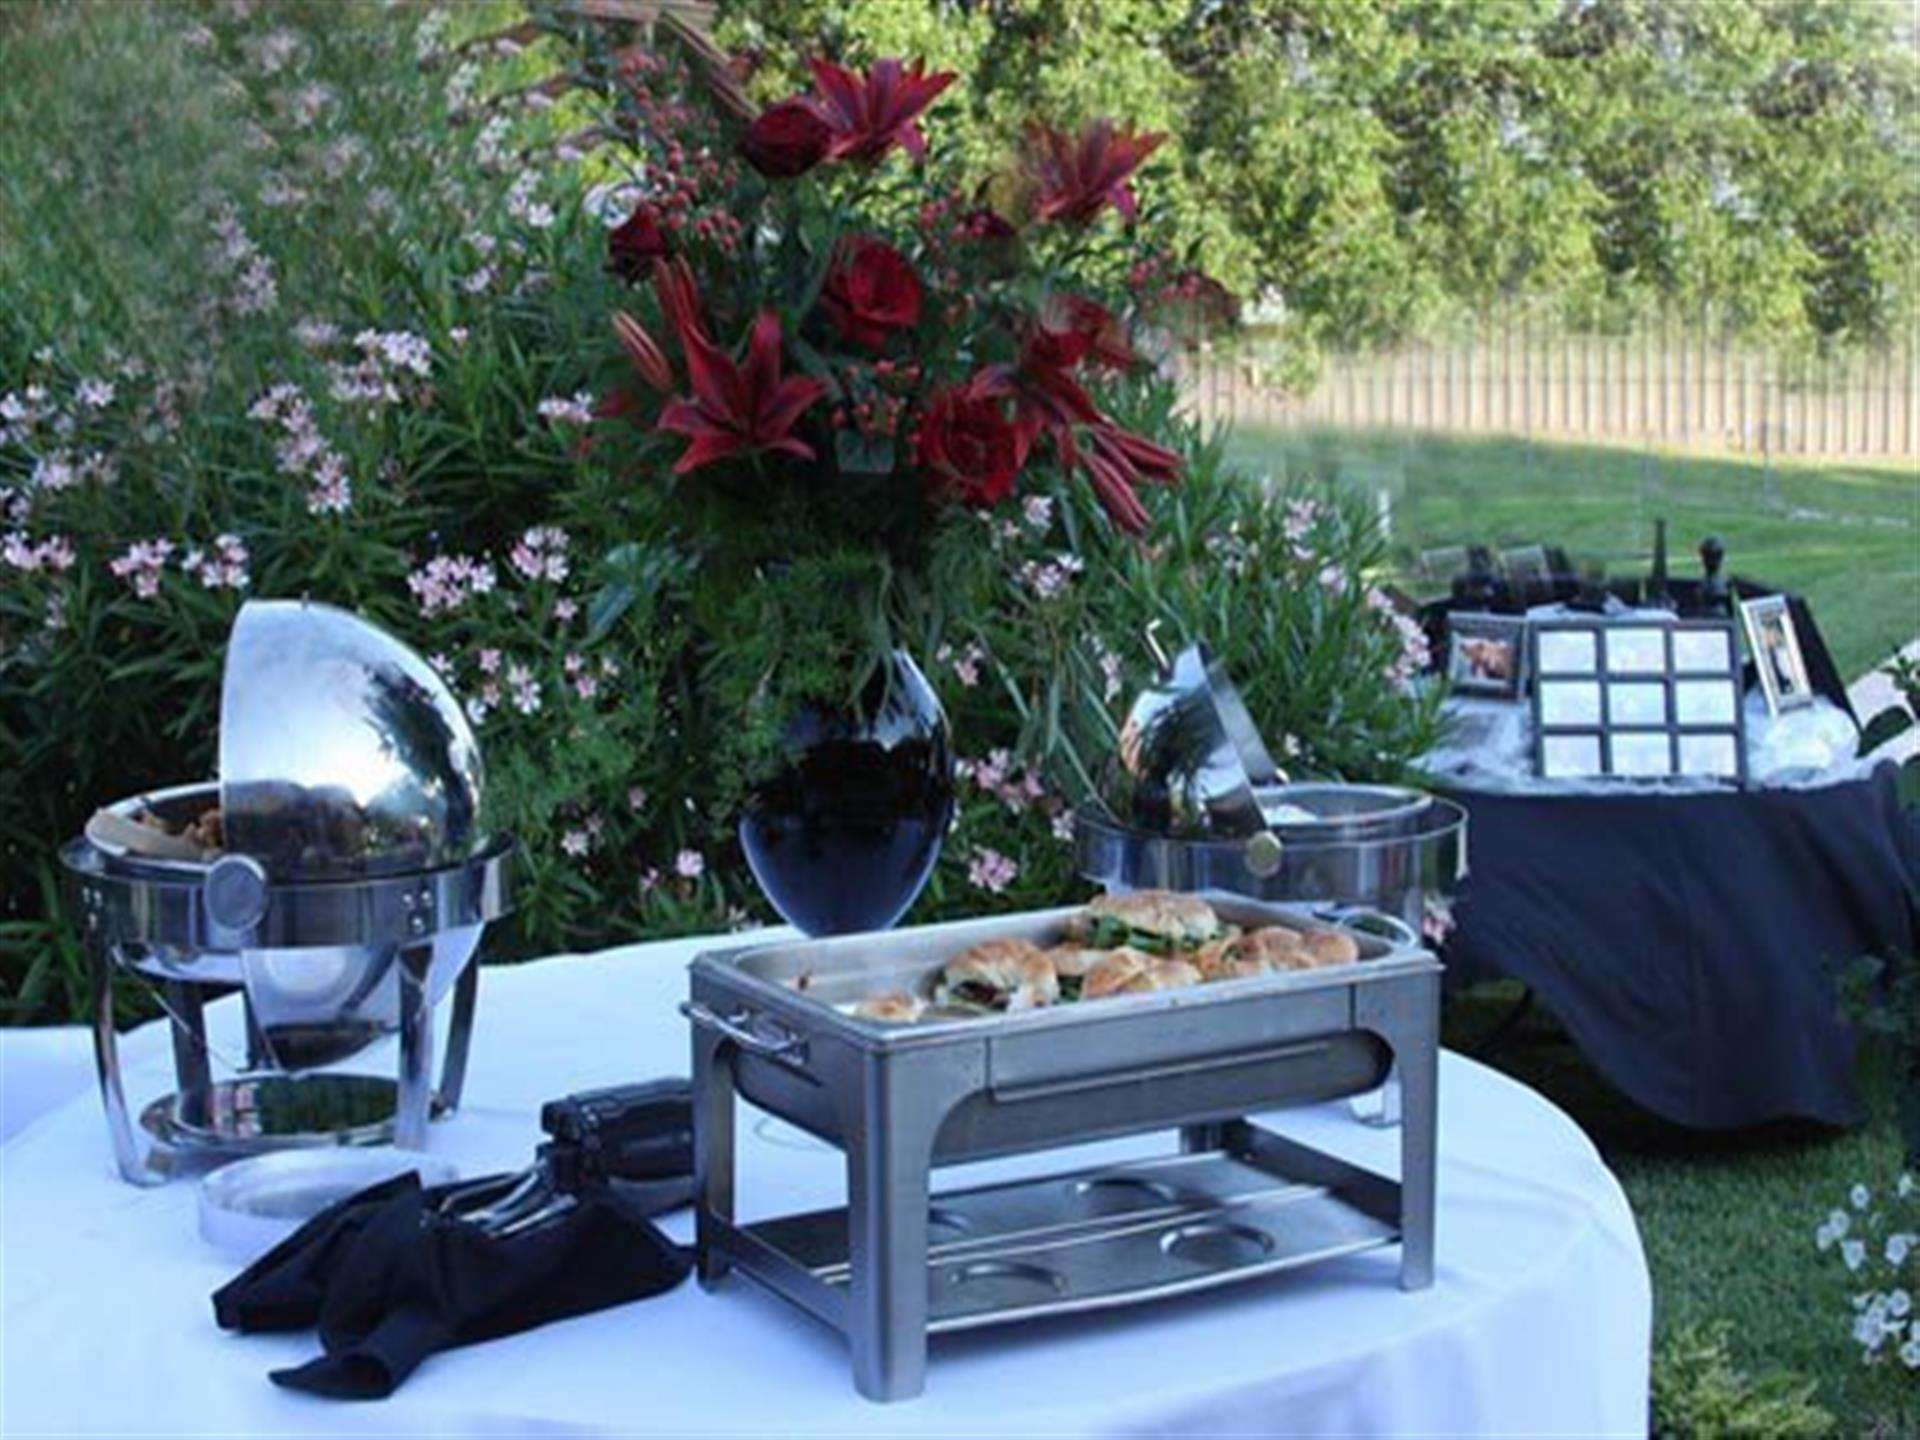 Catering sternos with sandwiches on outdoor table with white cloth